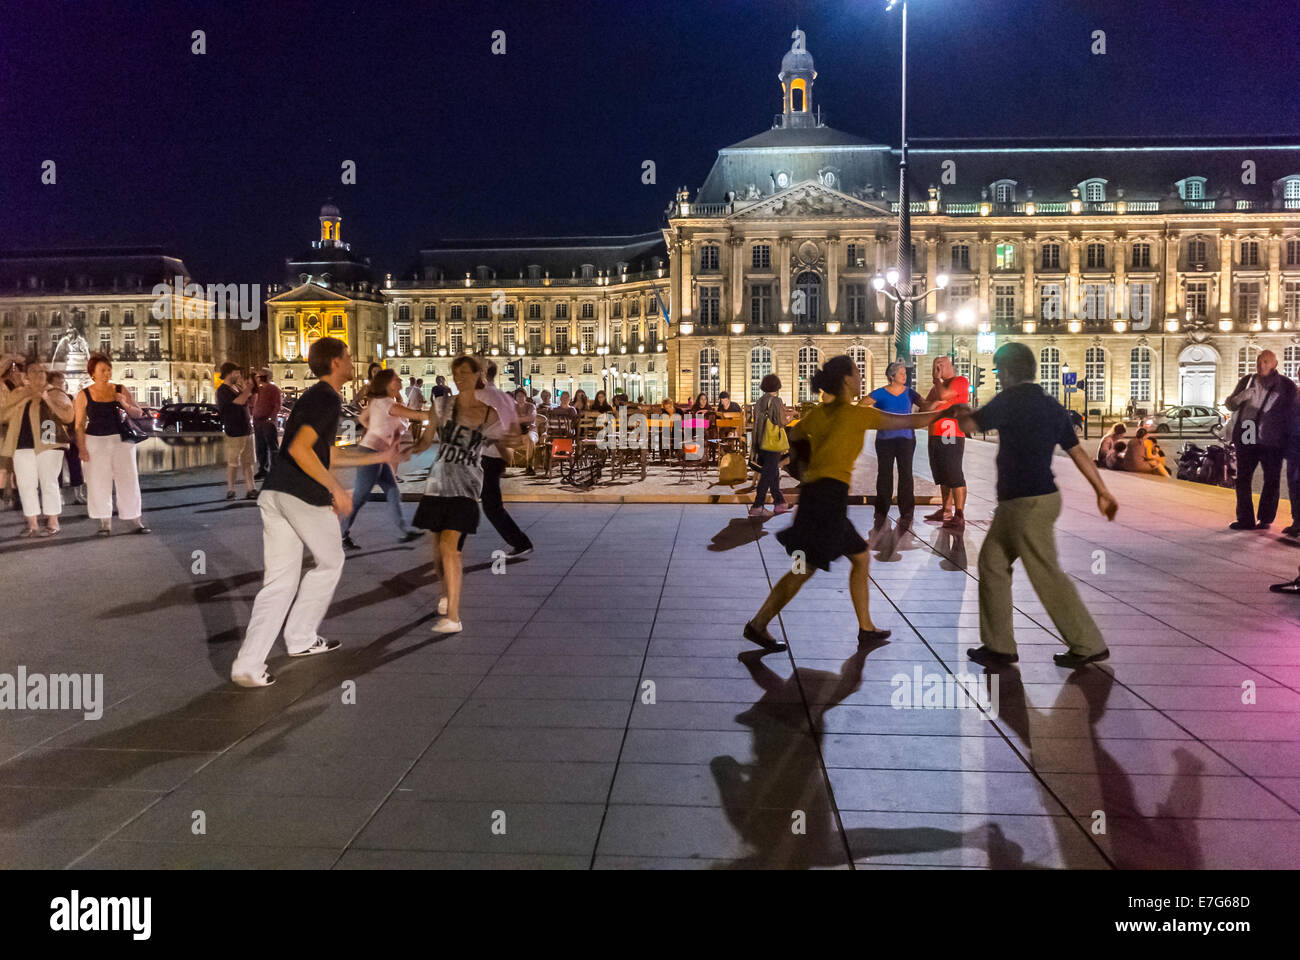 Bordeaux, France, Street Scenes, Crowd French Teen And Adult Couples  Dancing On Town